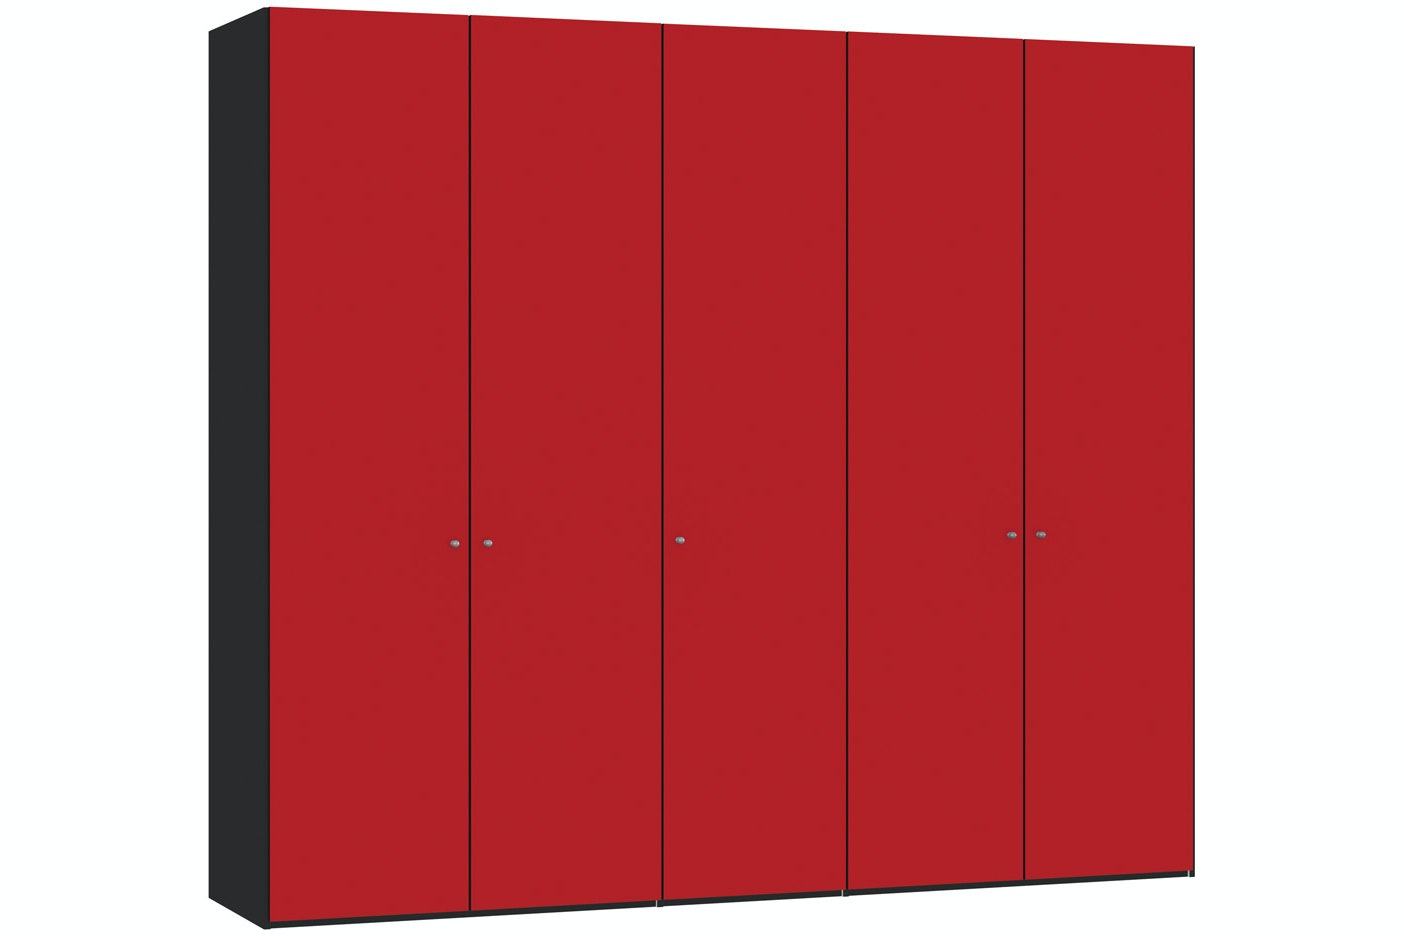 Jutzler Skye Longline 5 Door Wardrobe | Red Glass Matte